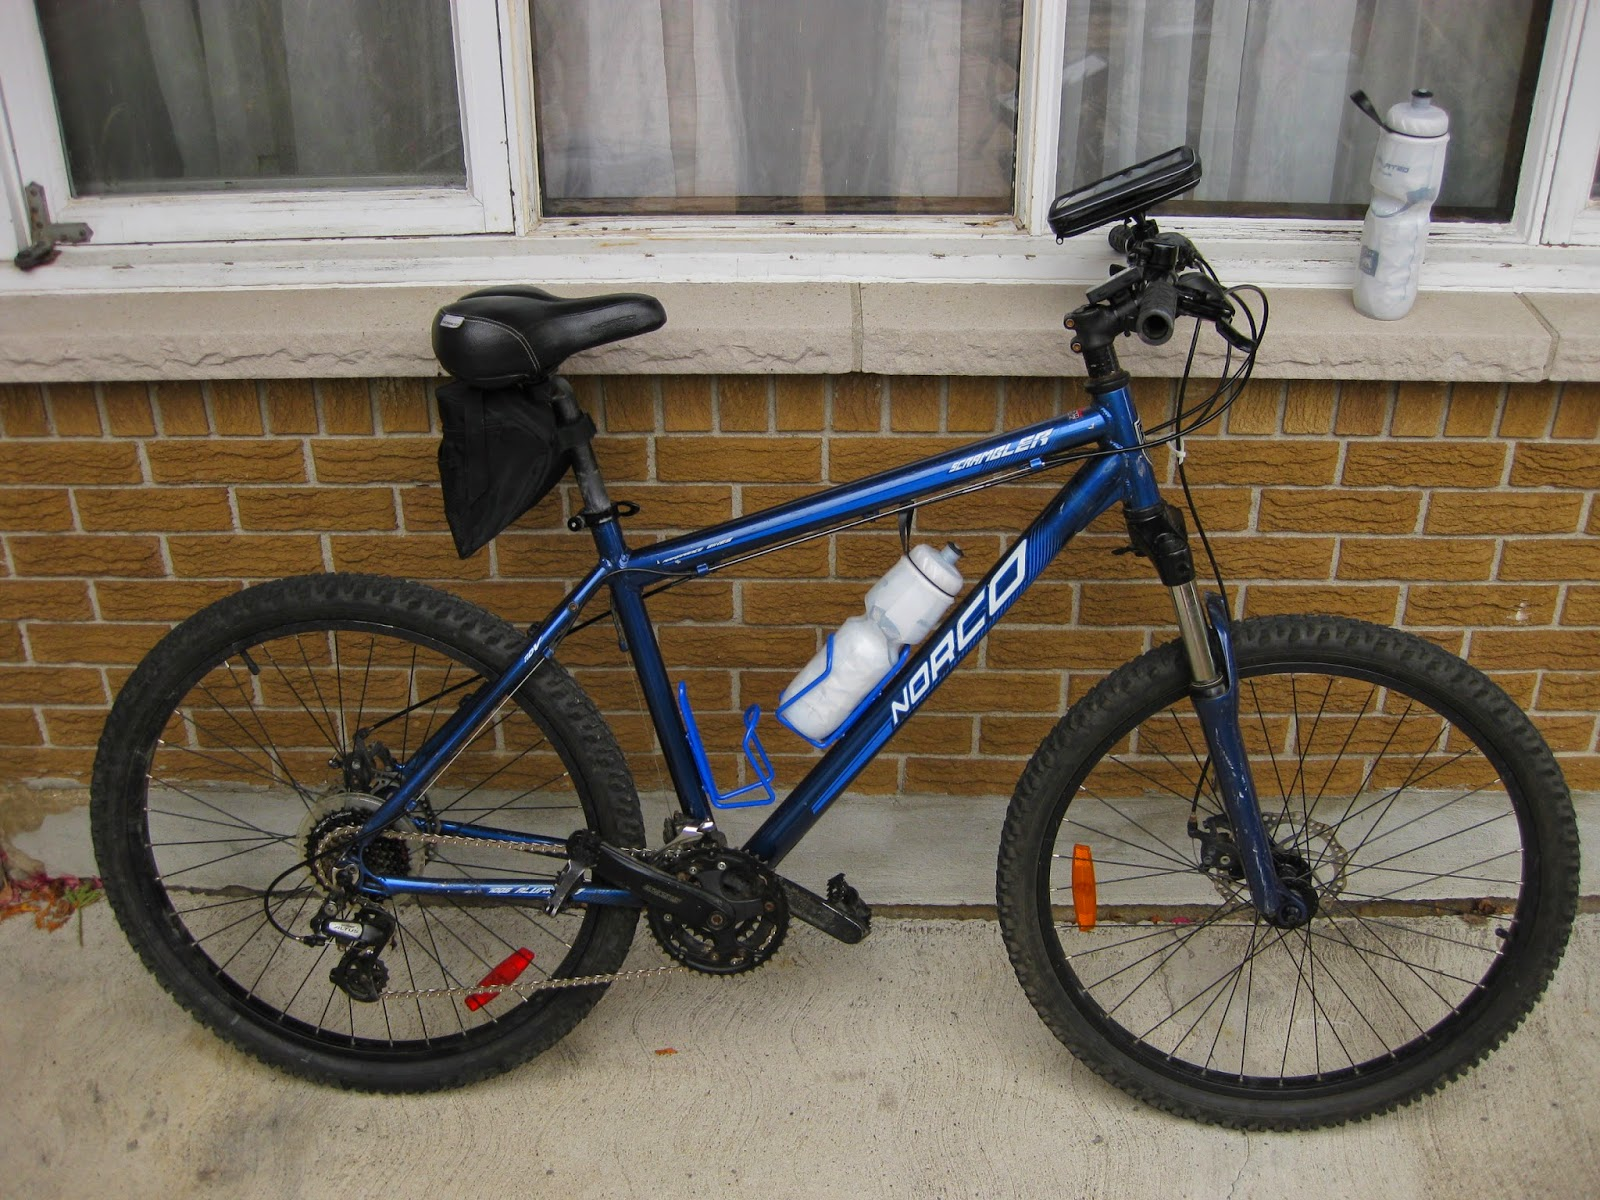 A used Norco Scrambler, blue in colour, to be used as my new ice bike project, Project Subzero.